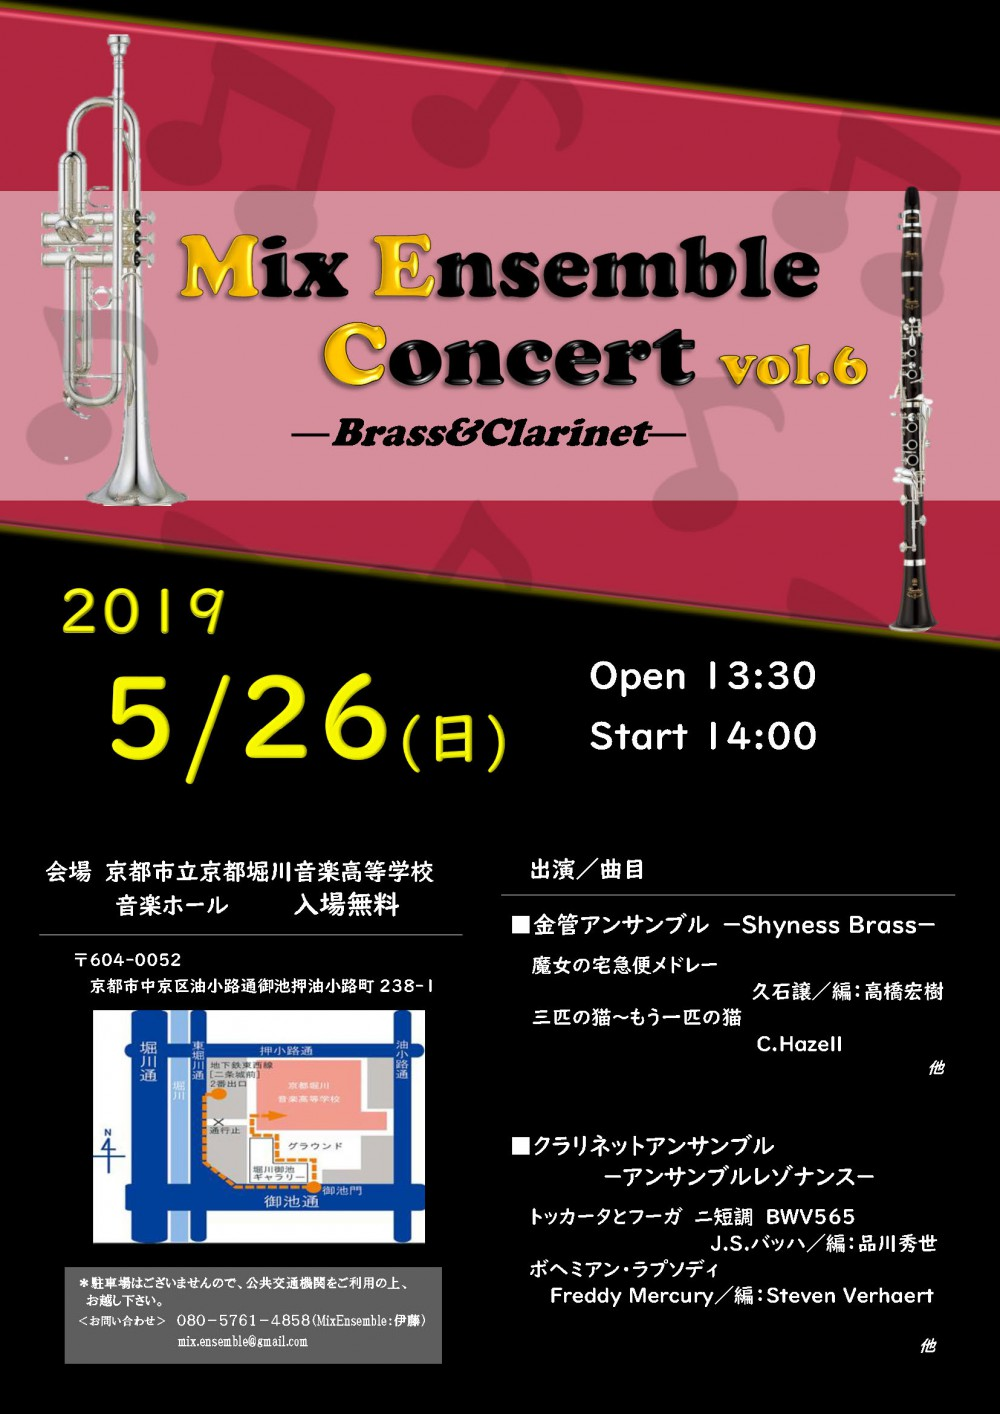 Mix Ensemble Concert vol.6 チラシ画像